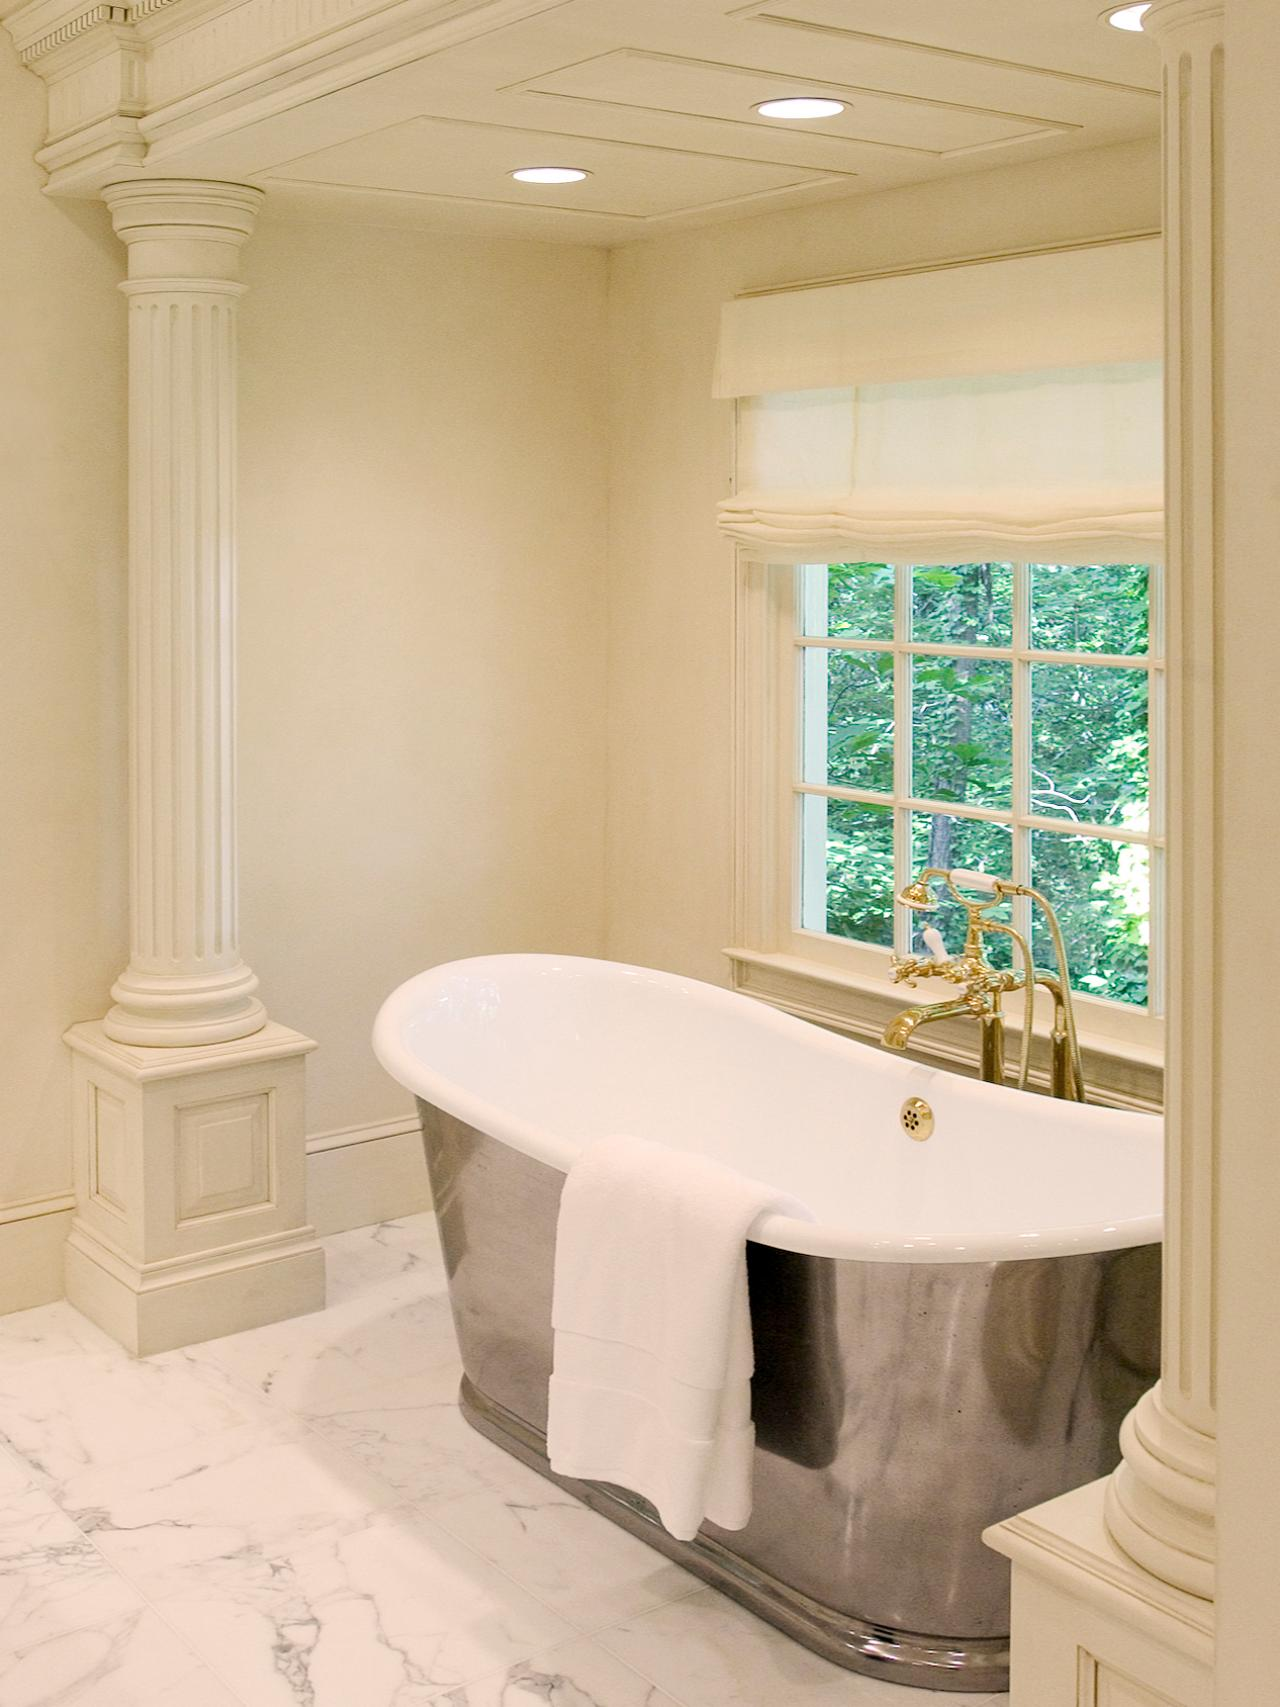 Dreamy tubs and showers bathroom ideas designs hgtv for Bathroom ideas with tub